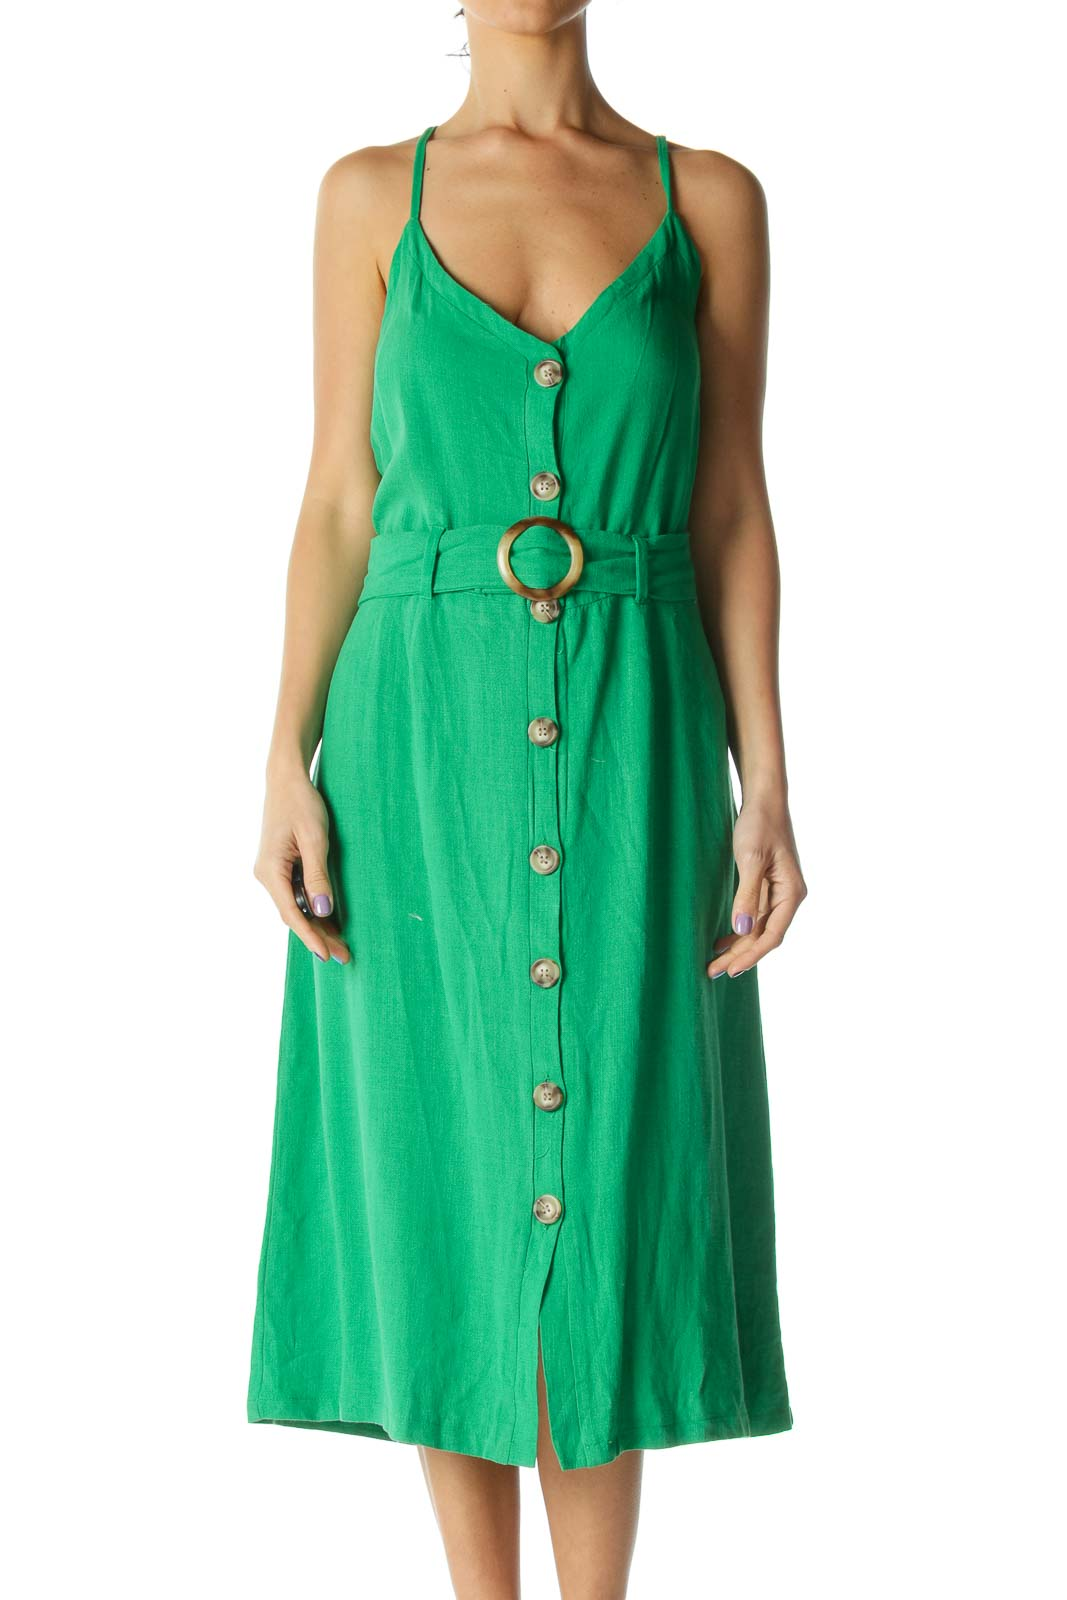 Green Midi Day Dress